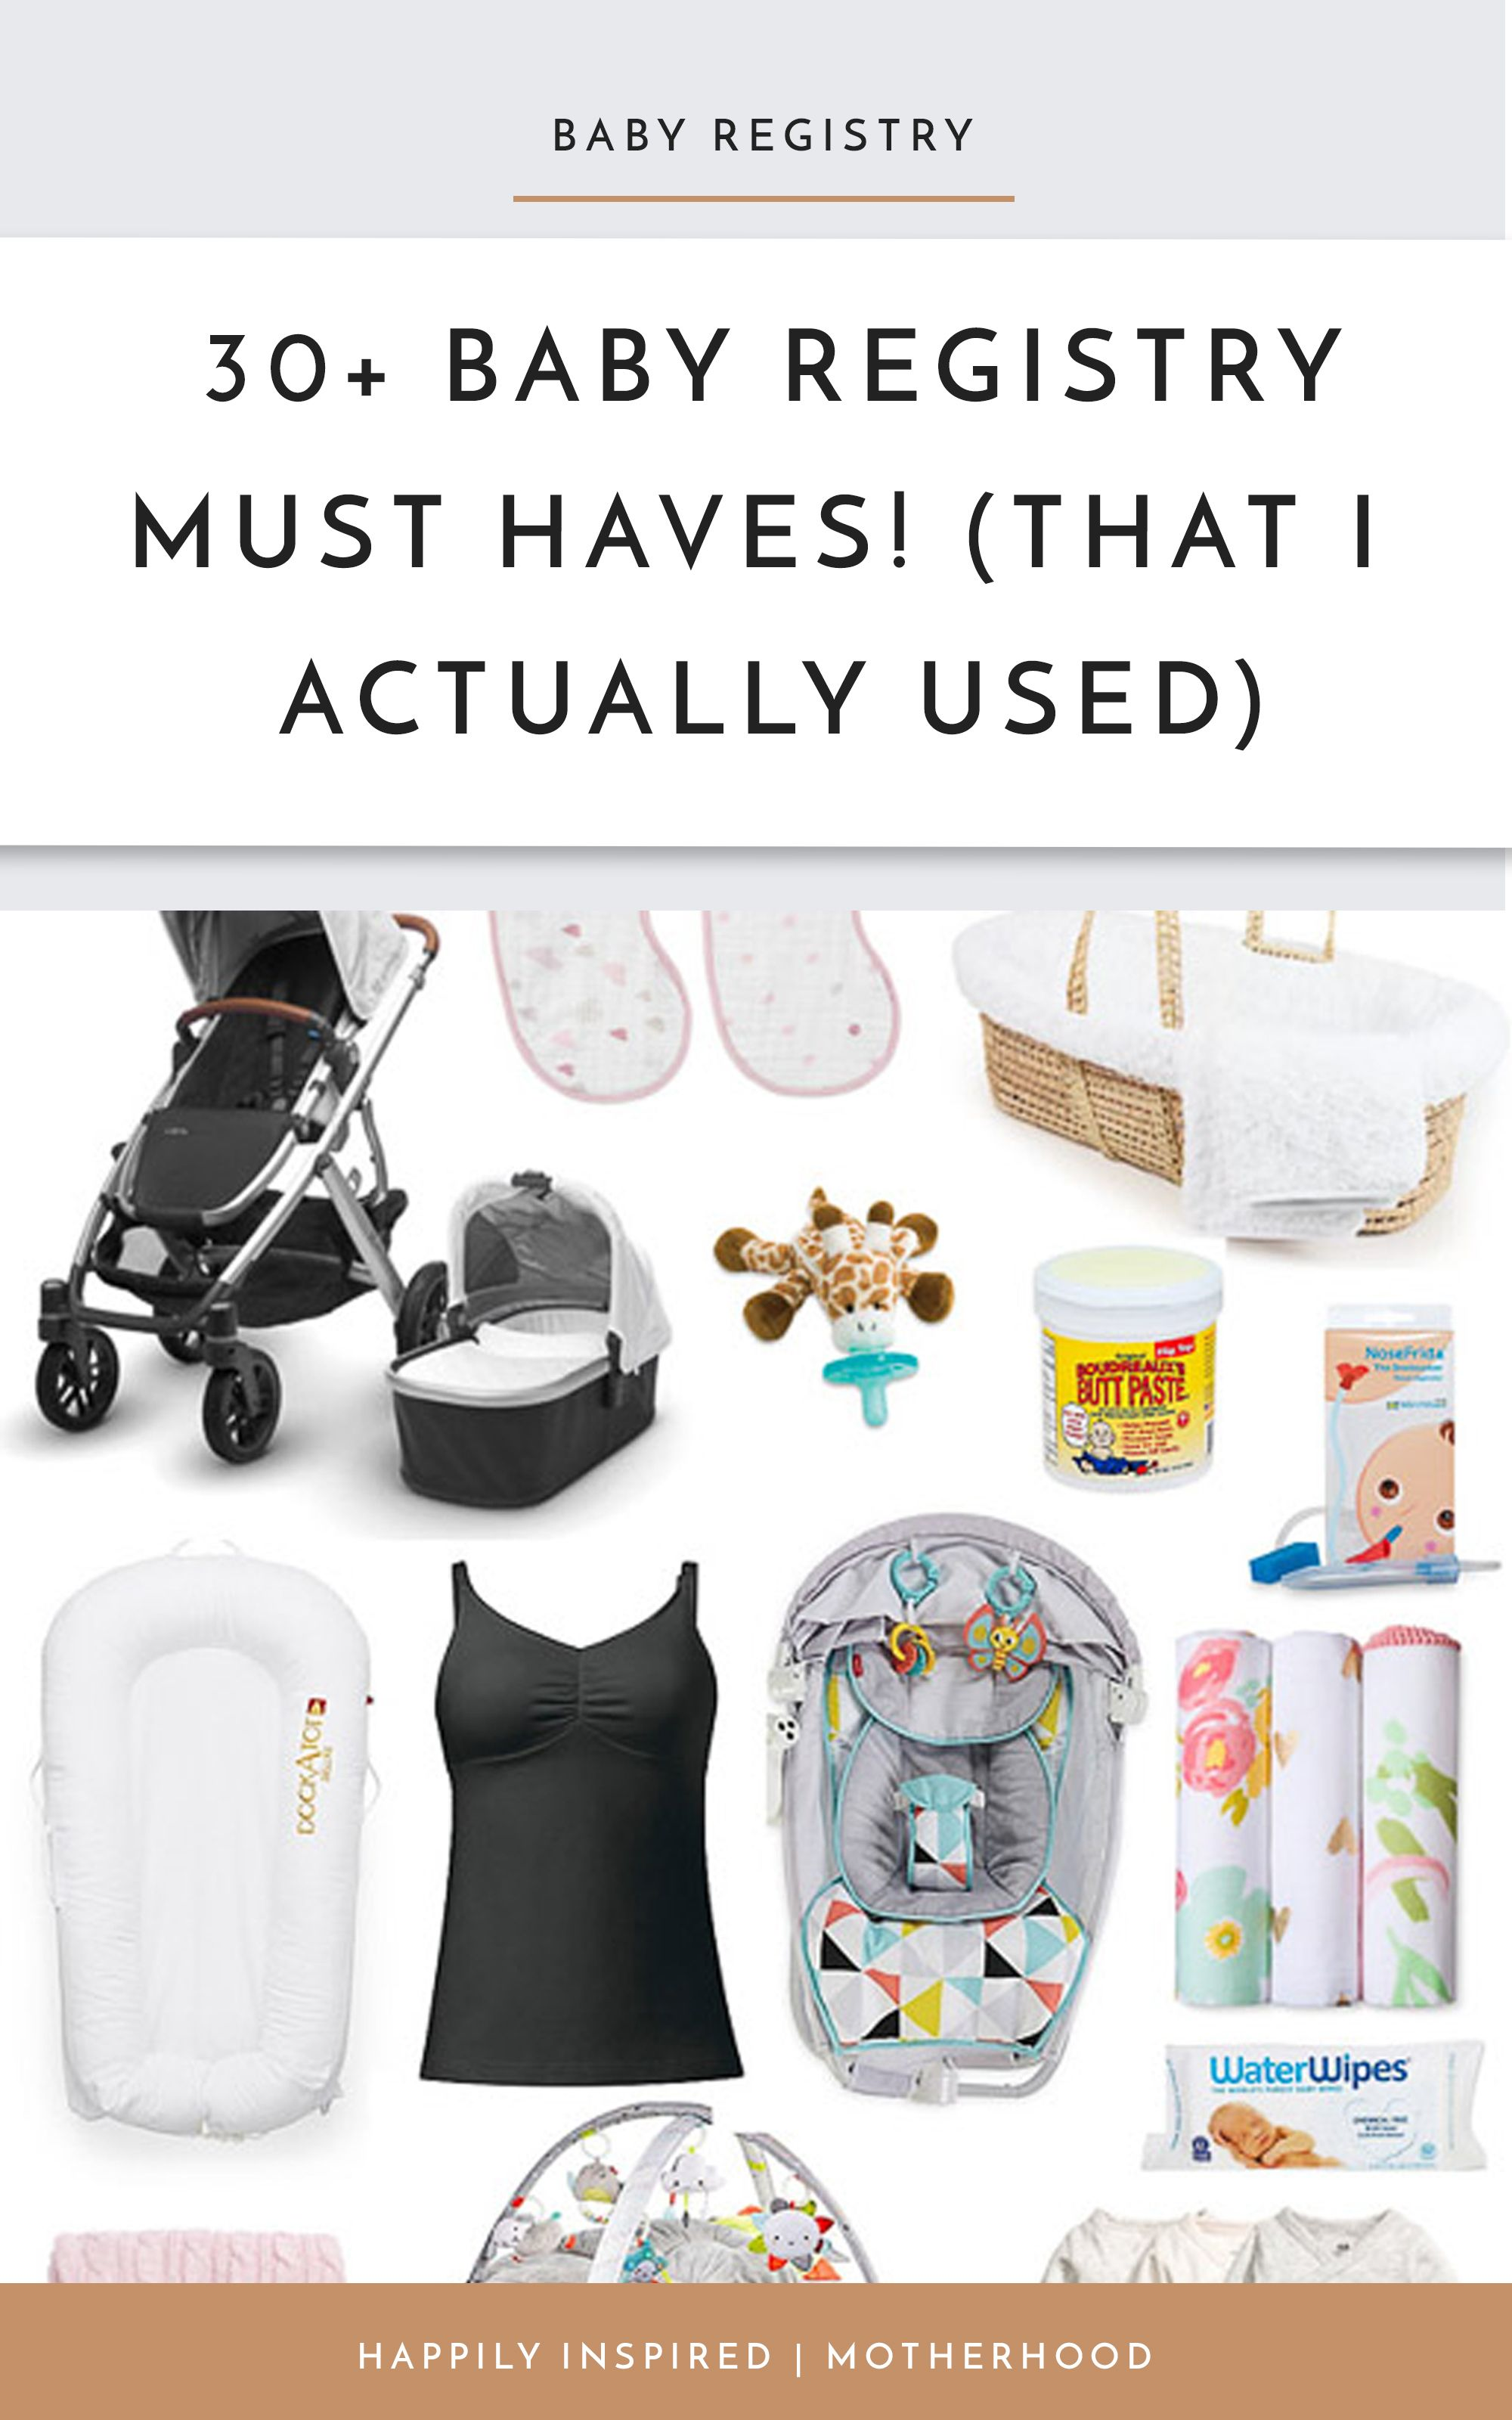 Newborn Essentials I'm Actually Using (With images) | Baby ...